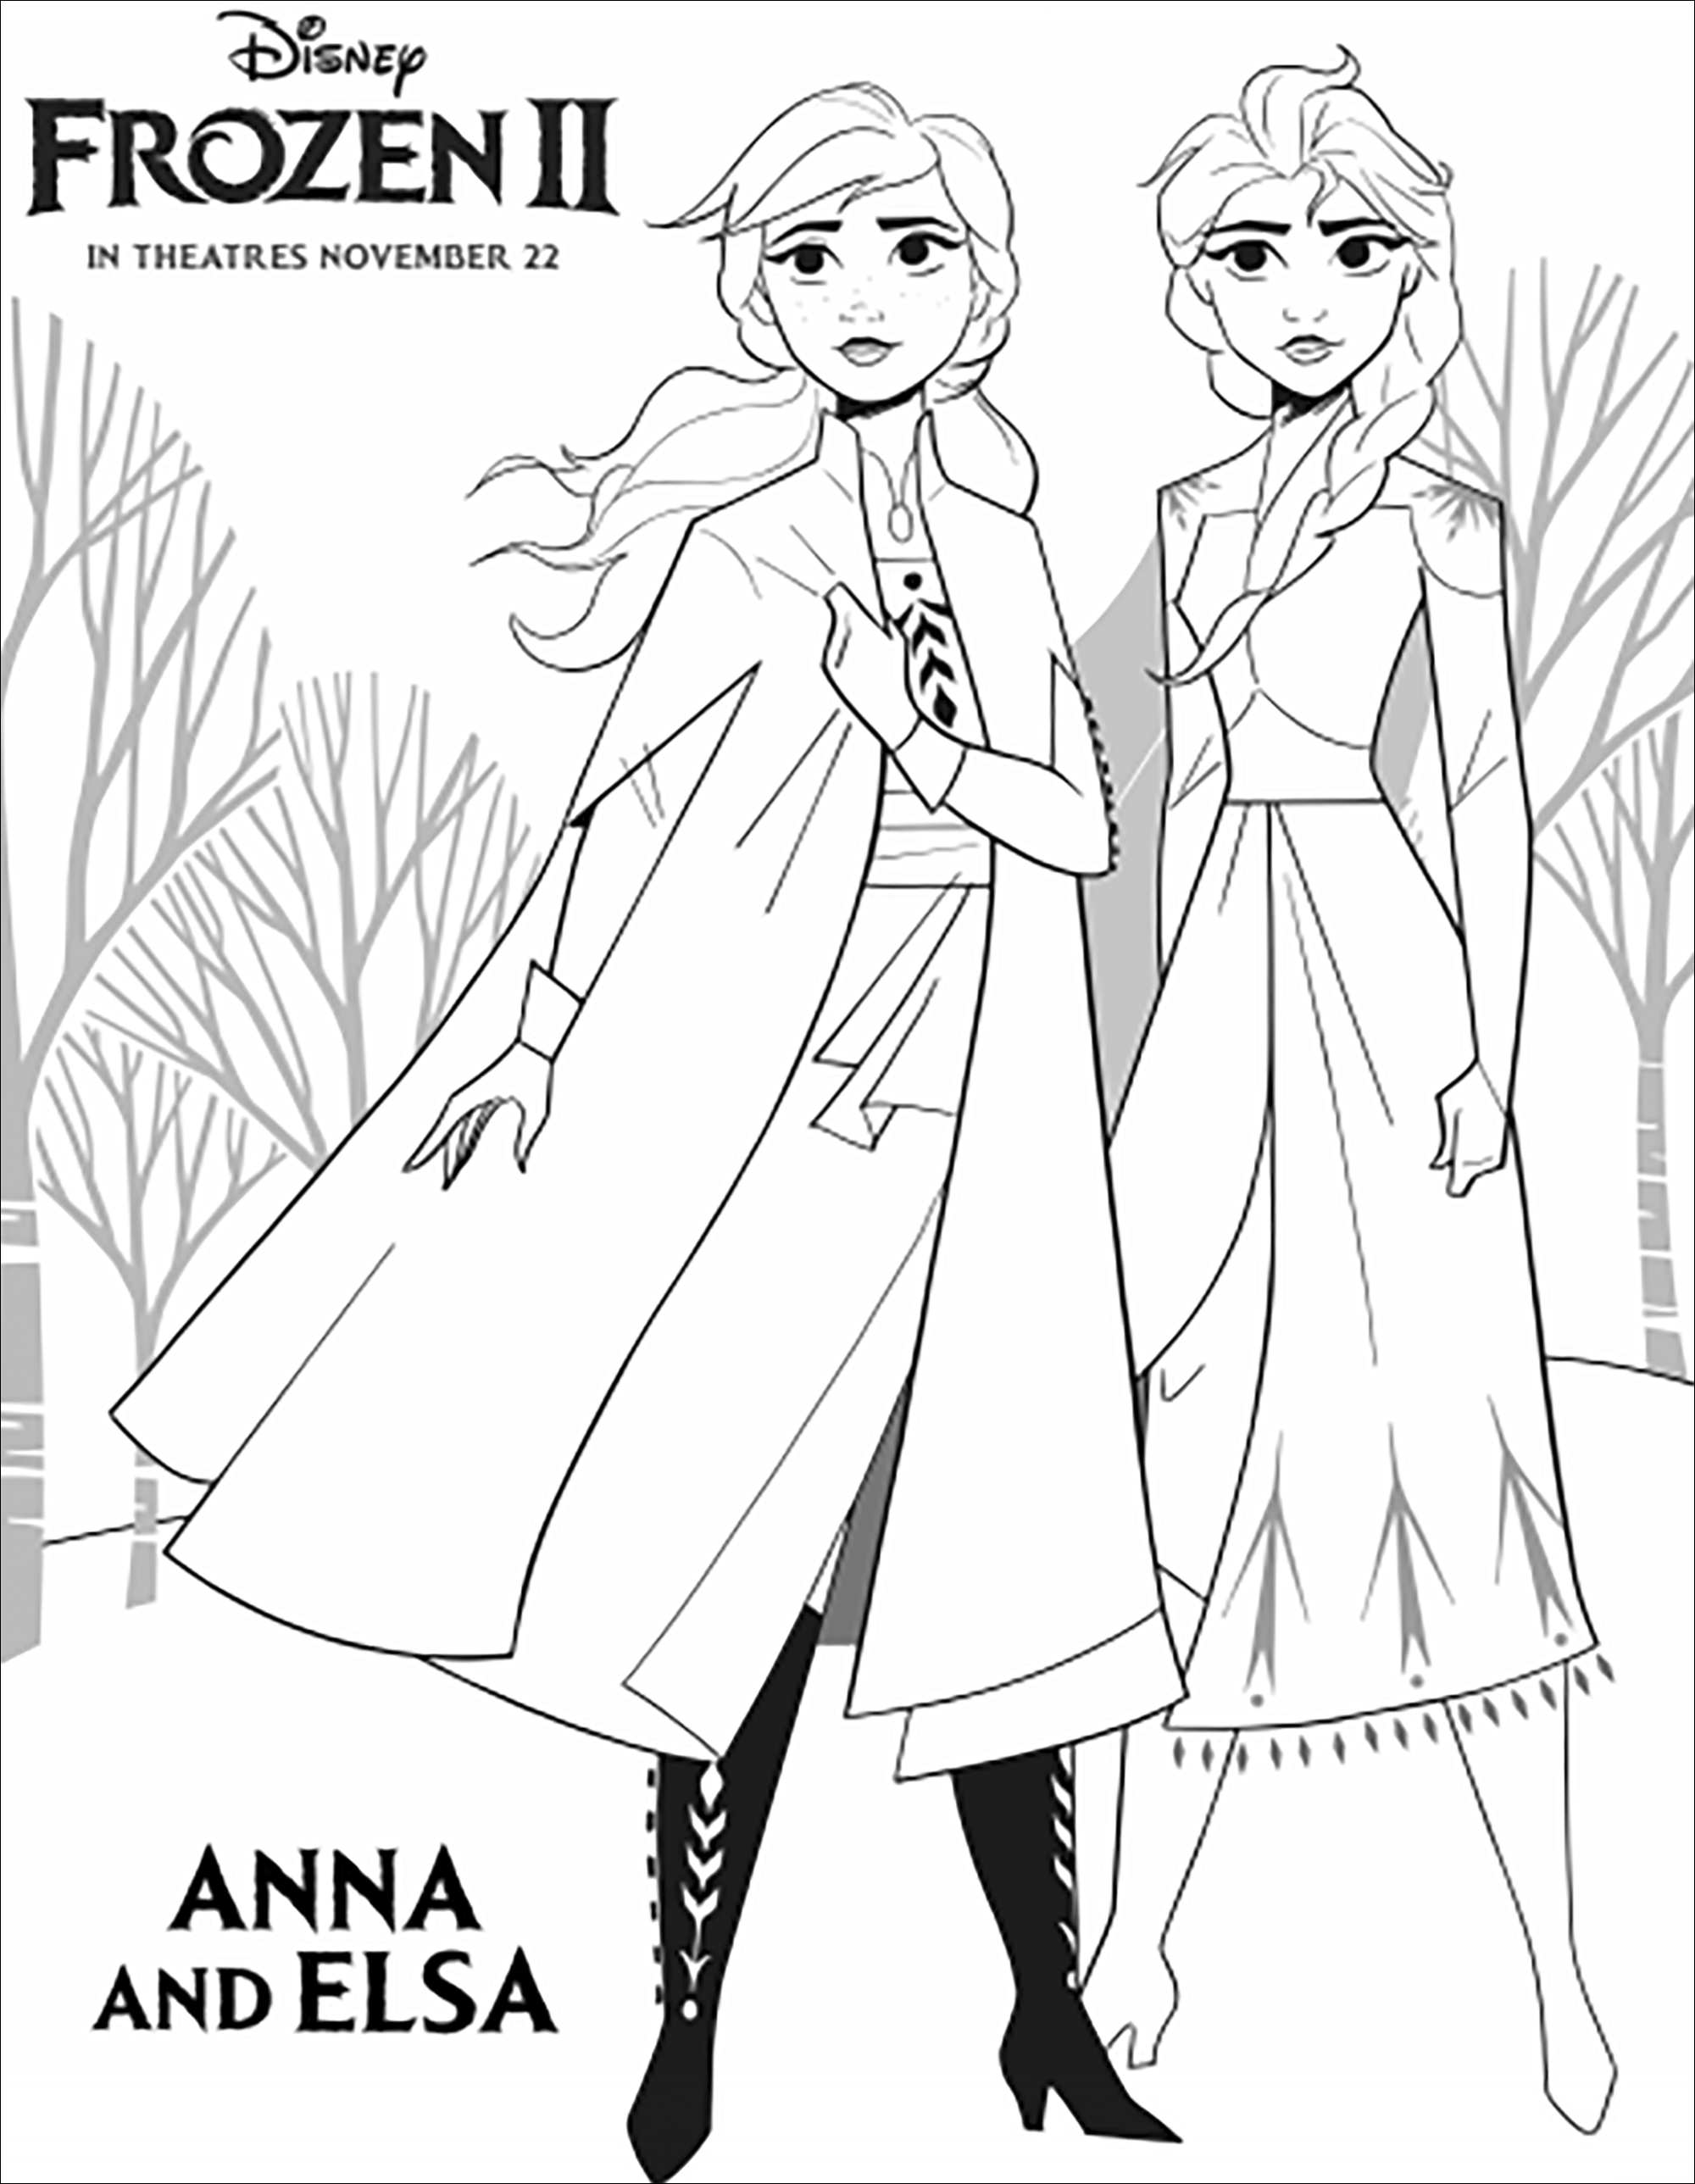 Incredible Frozen 2 coloring page to print and color for free with Anna & Elsa